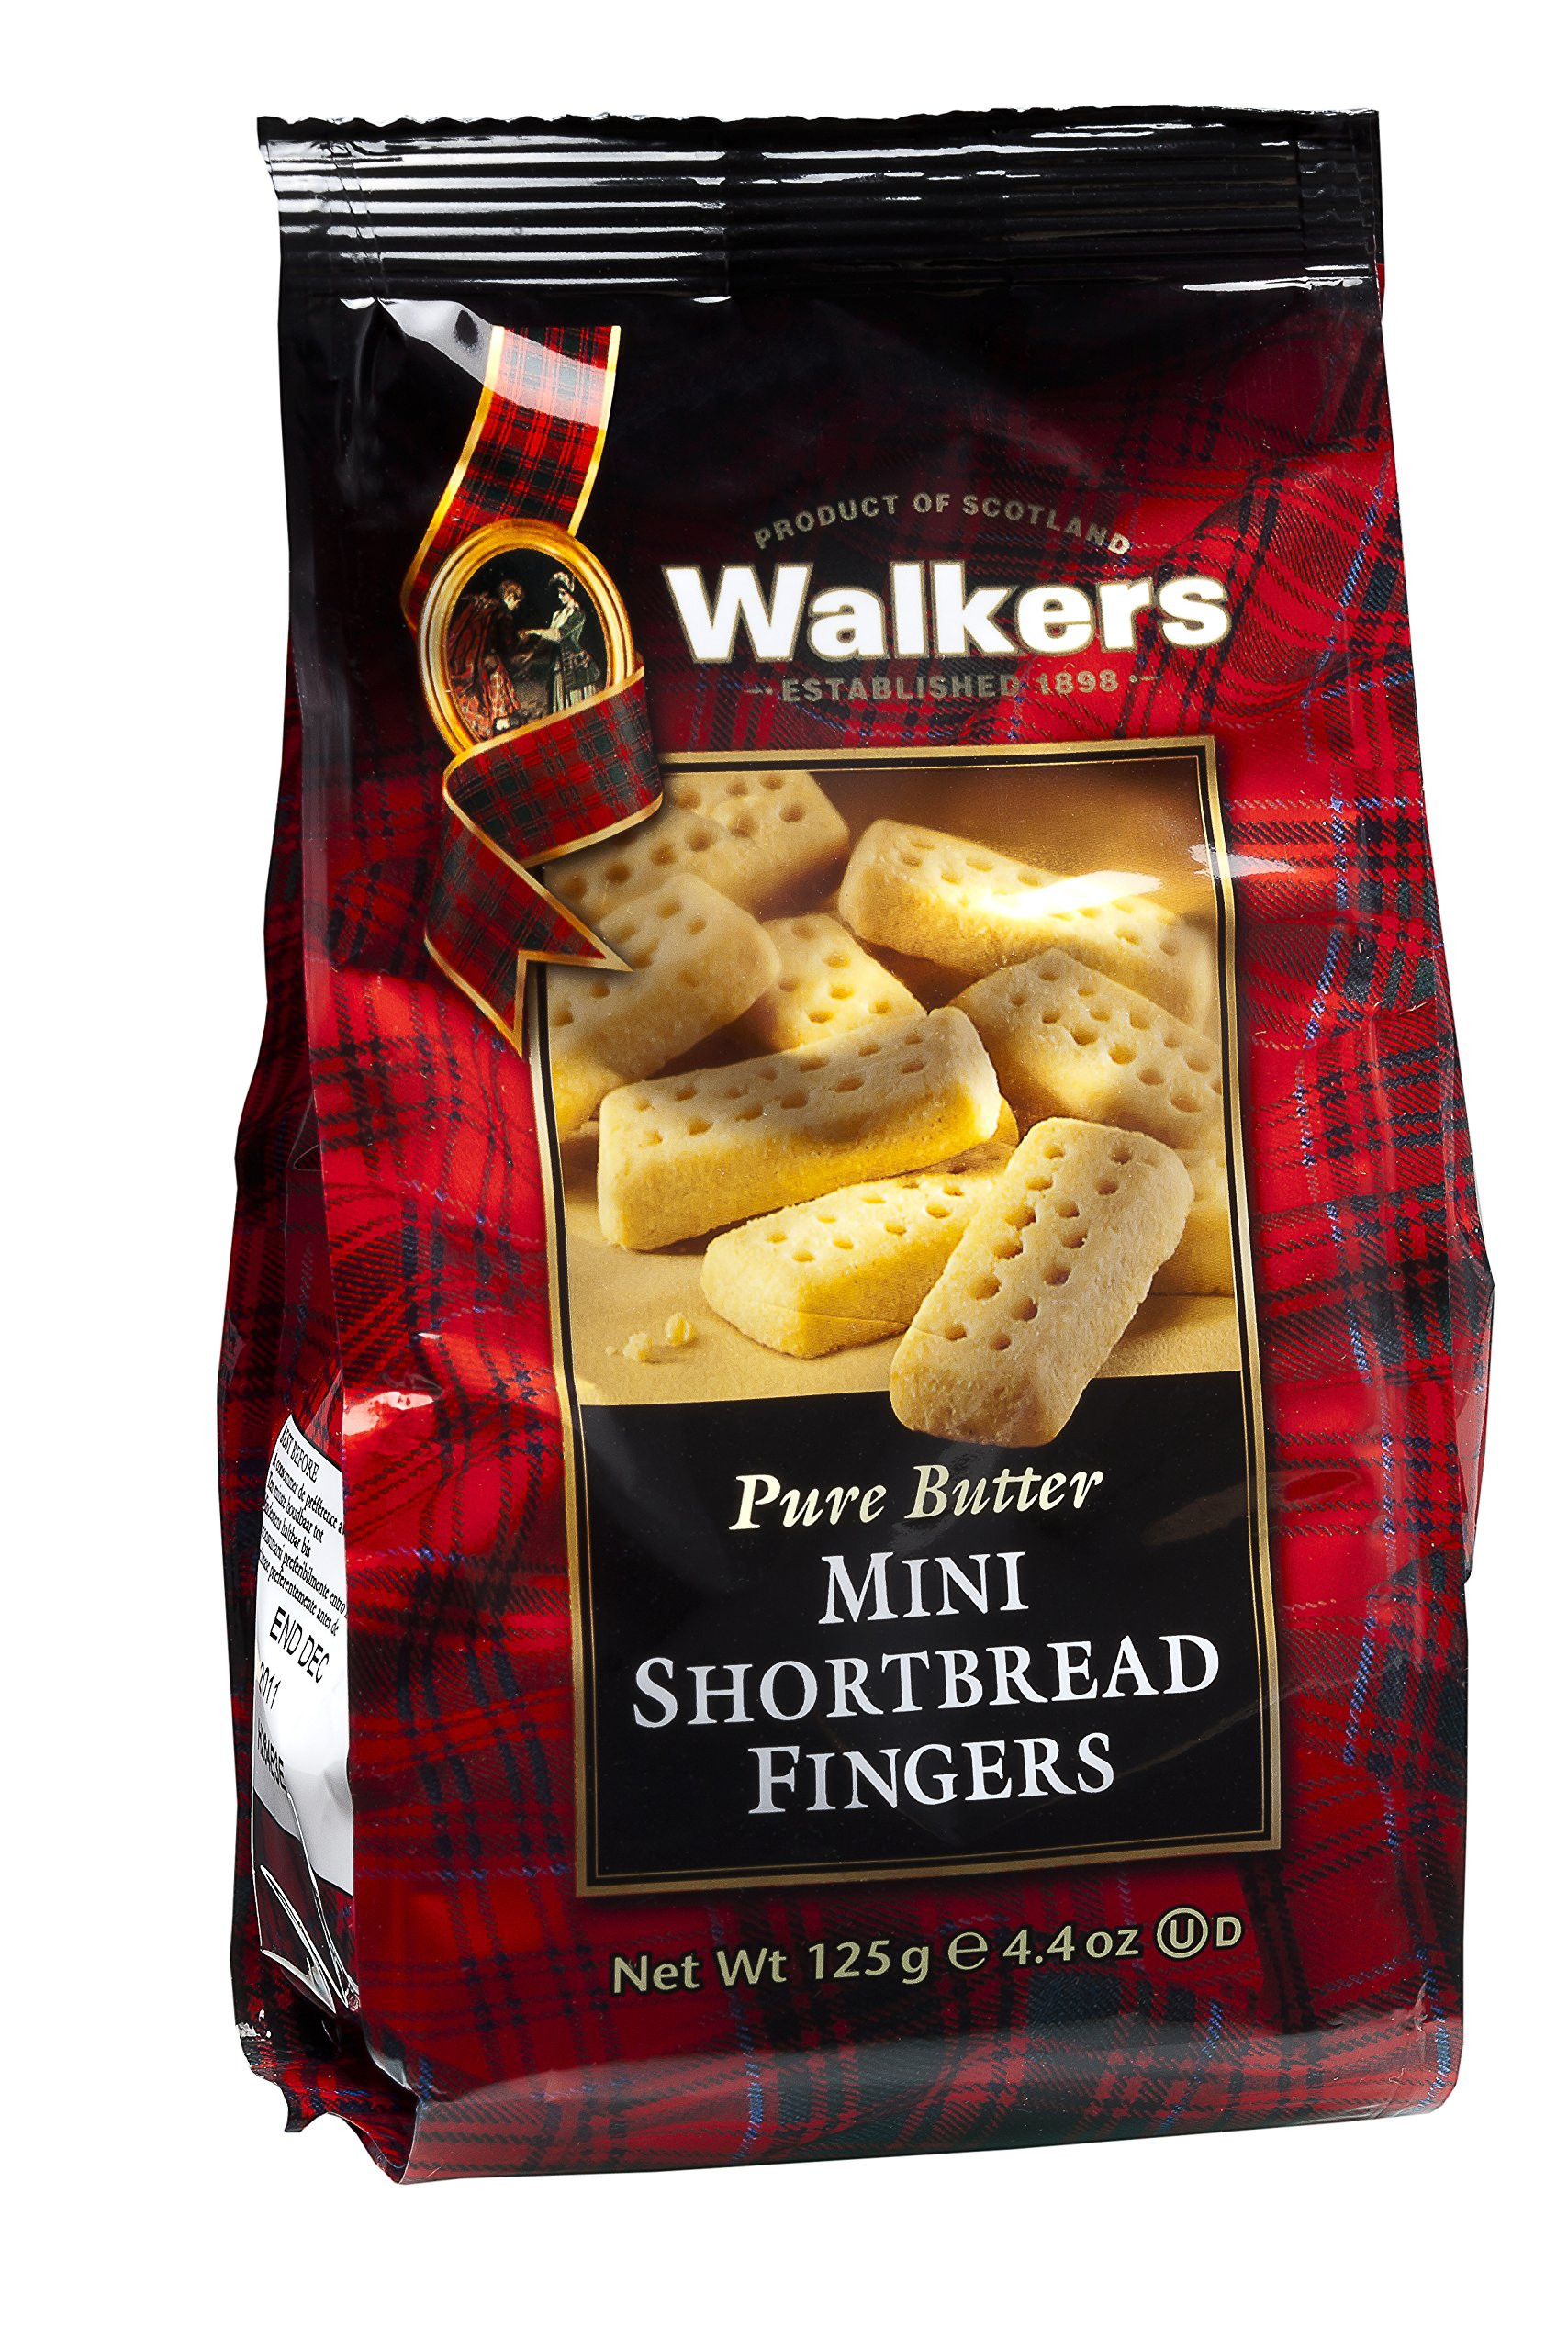 proflowers 19.99 free vase of amazon com walkers shortbread pure butter fingers 13 2 ounce box in walkers shortbread mini fingers 4 4 ounce pack of 6 traditional and